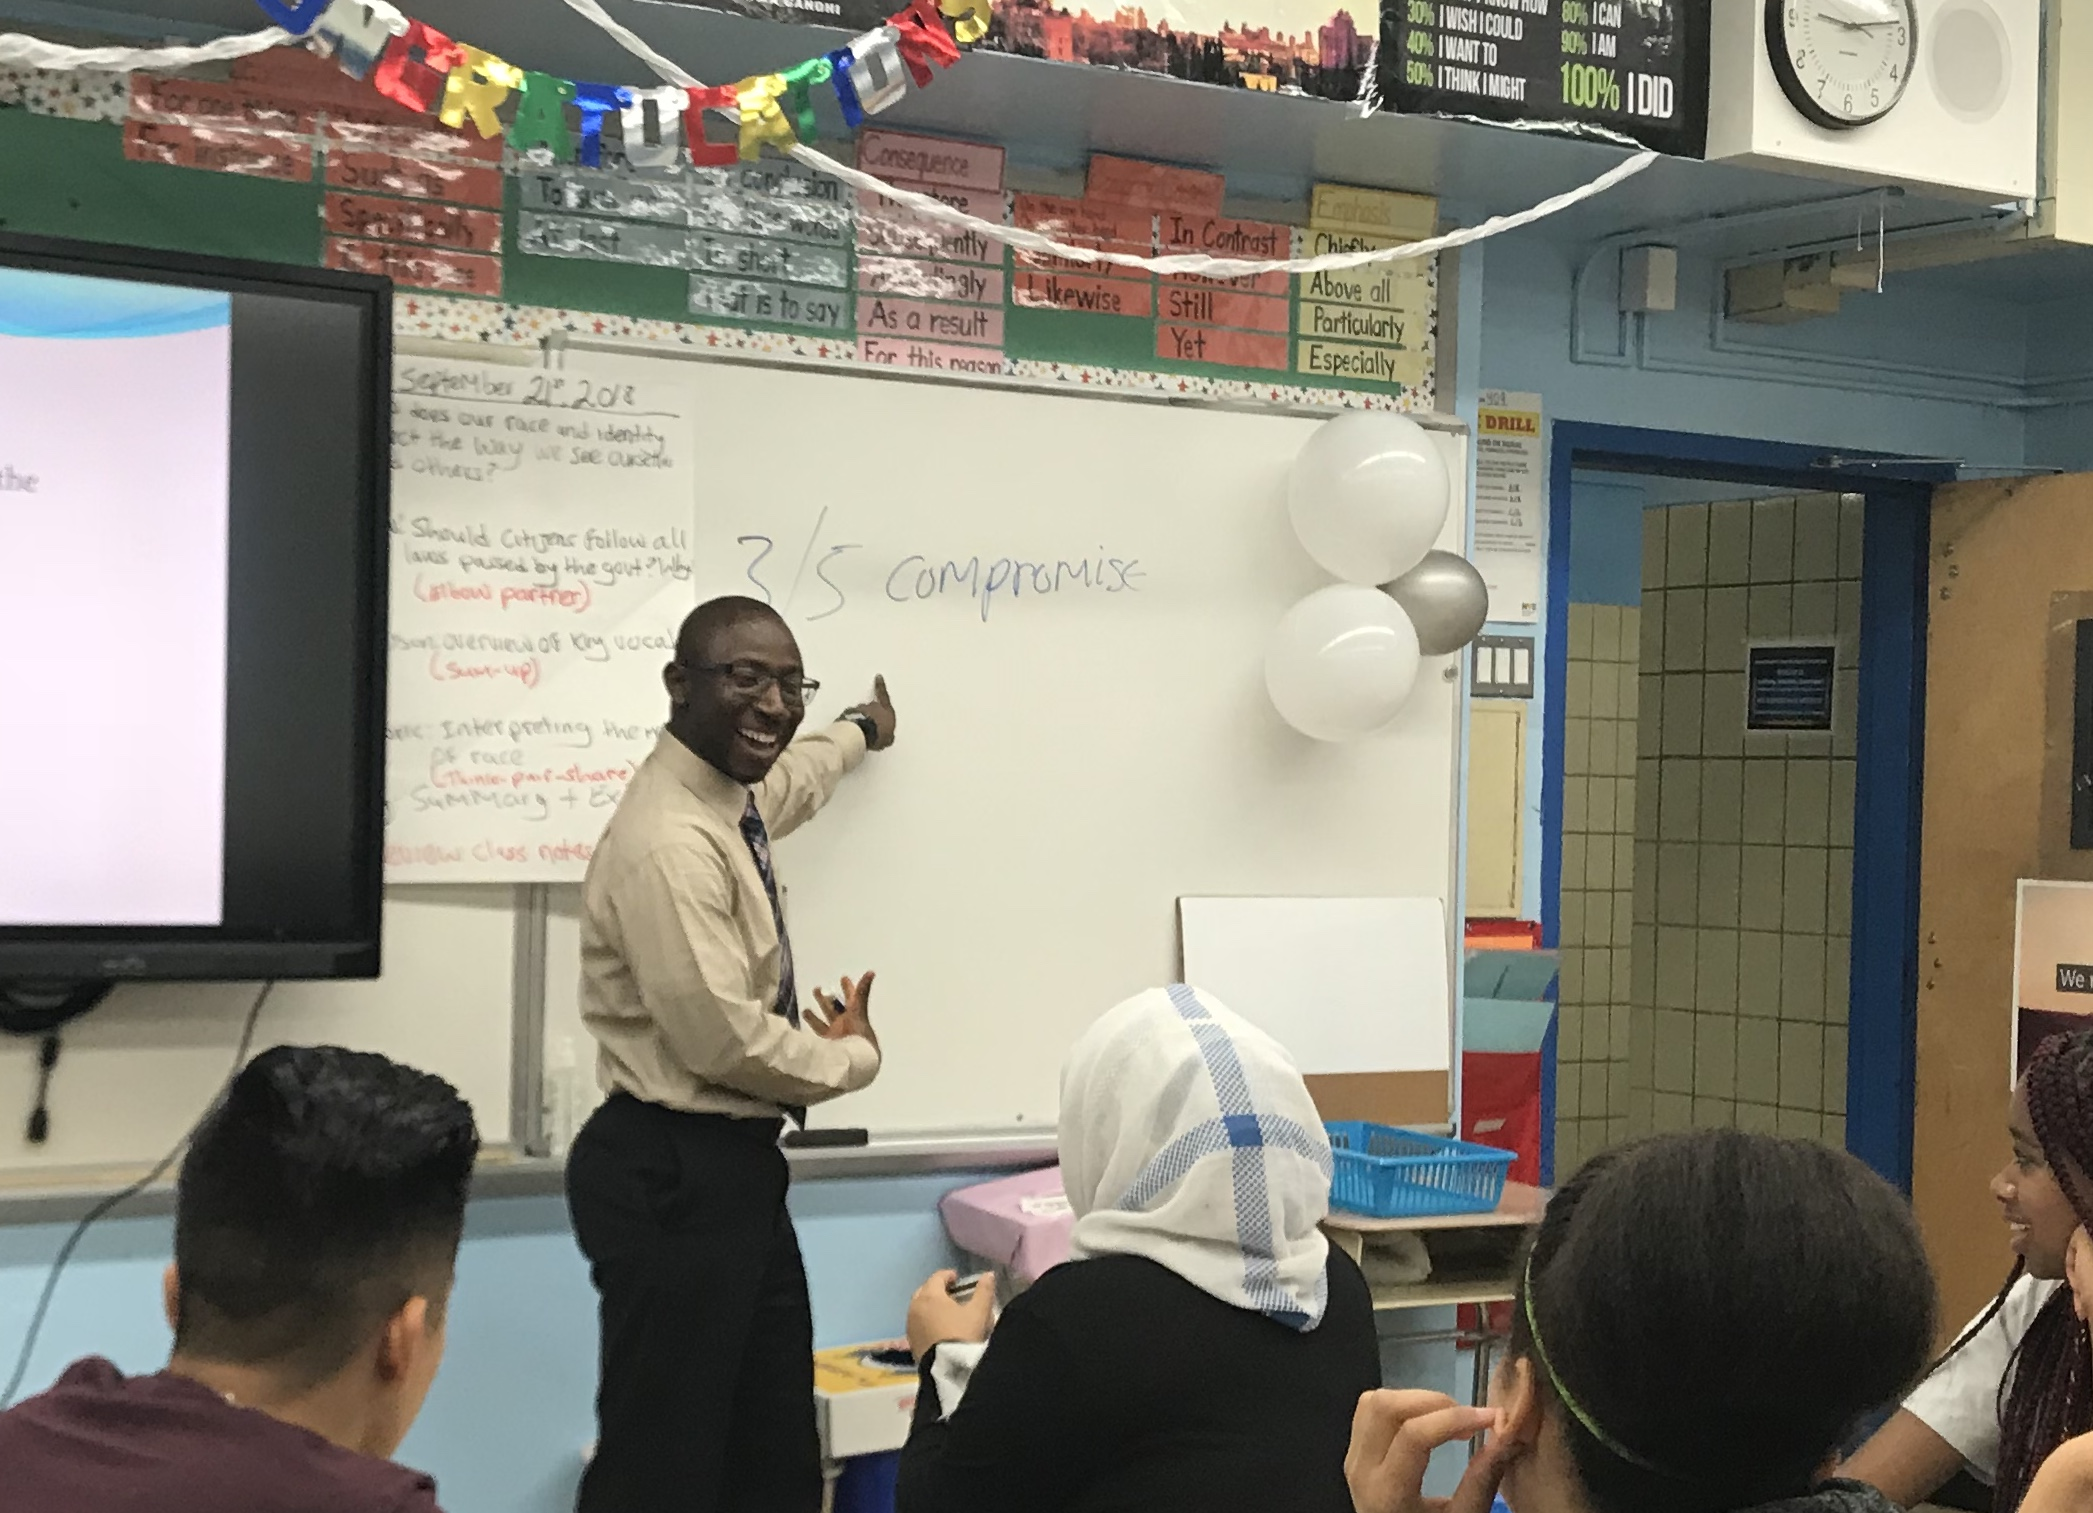 Alhassan Susso, New York's Teacher of the Year, leads a class discussion in his Bronx classroom.